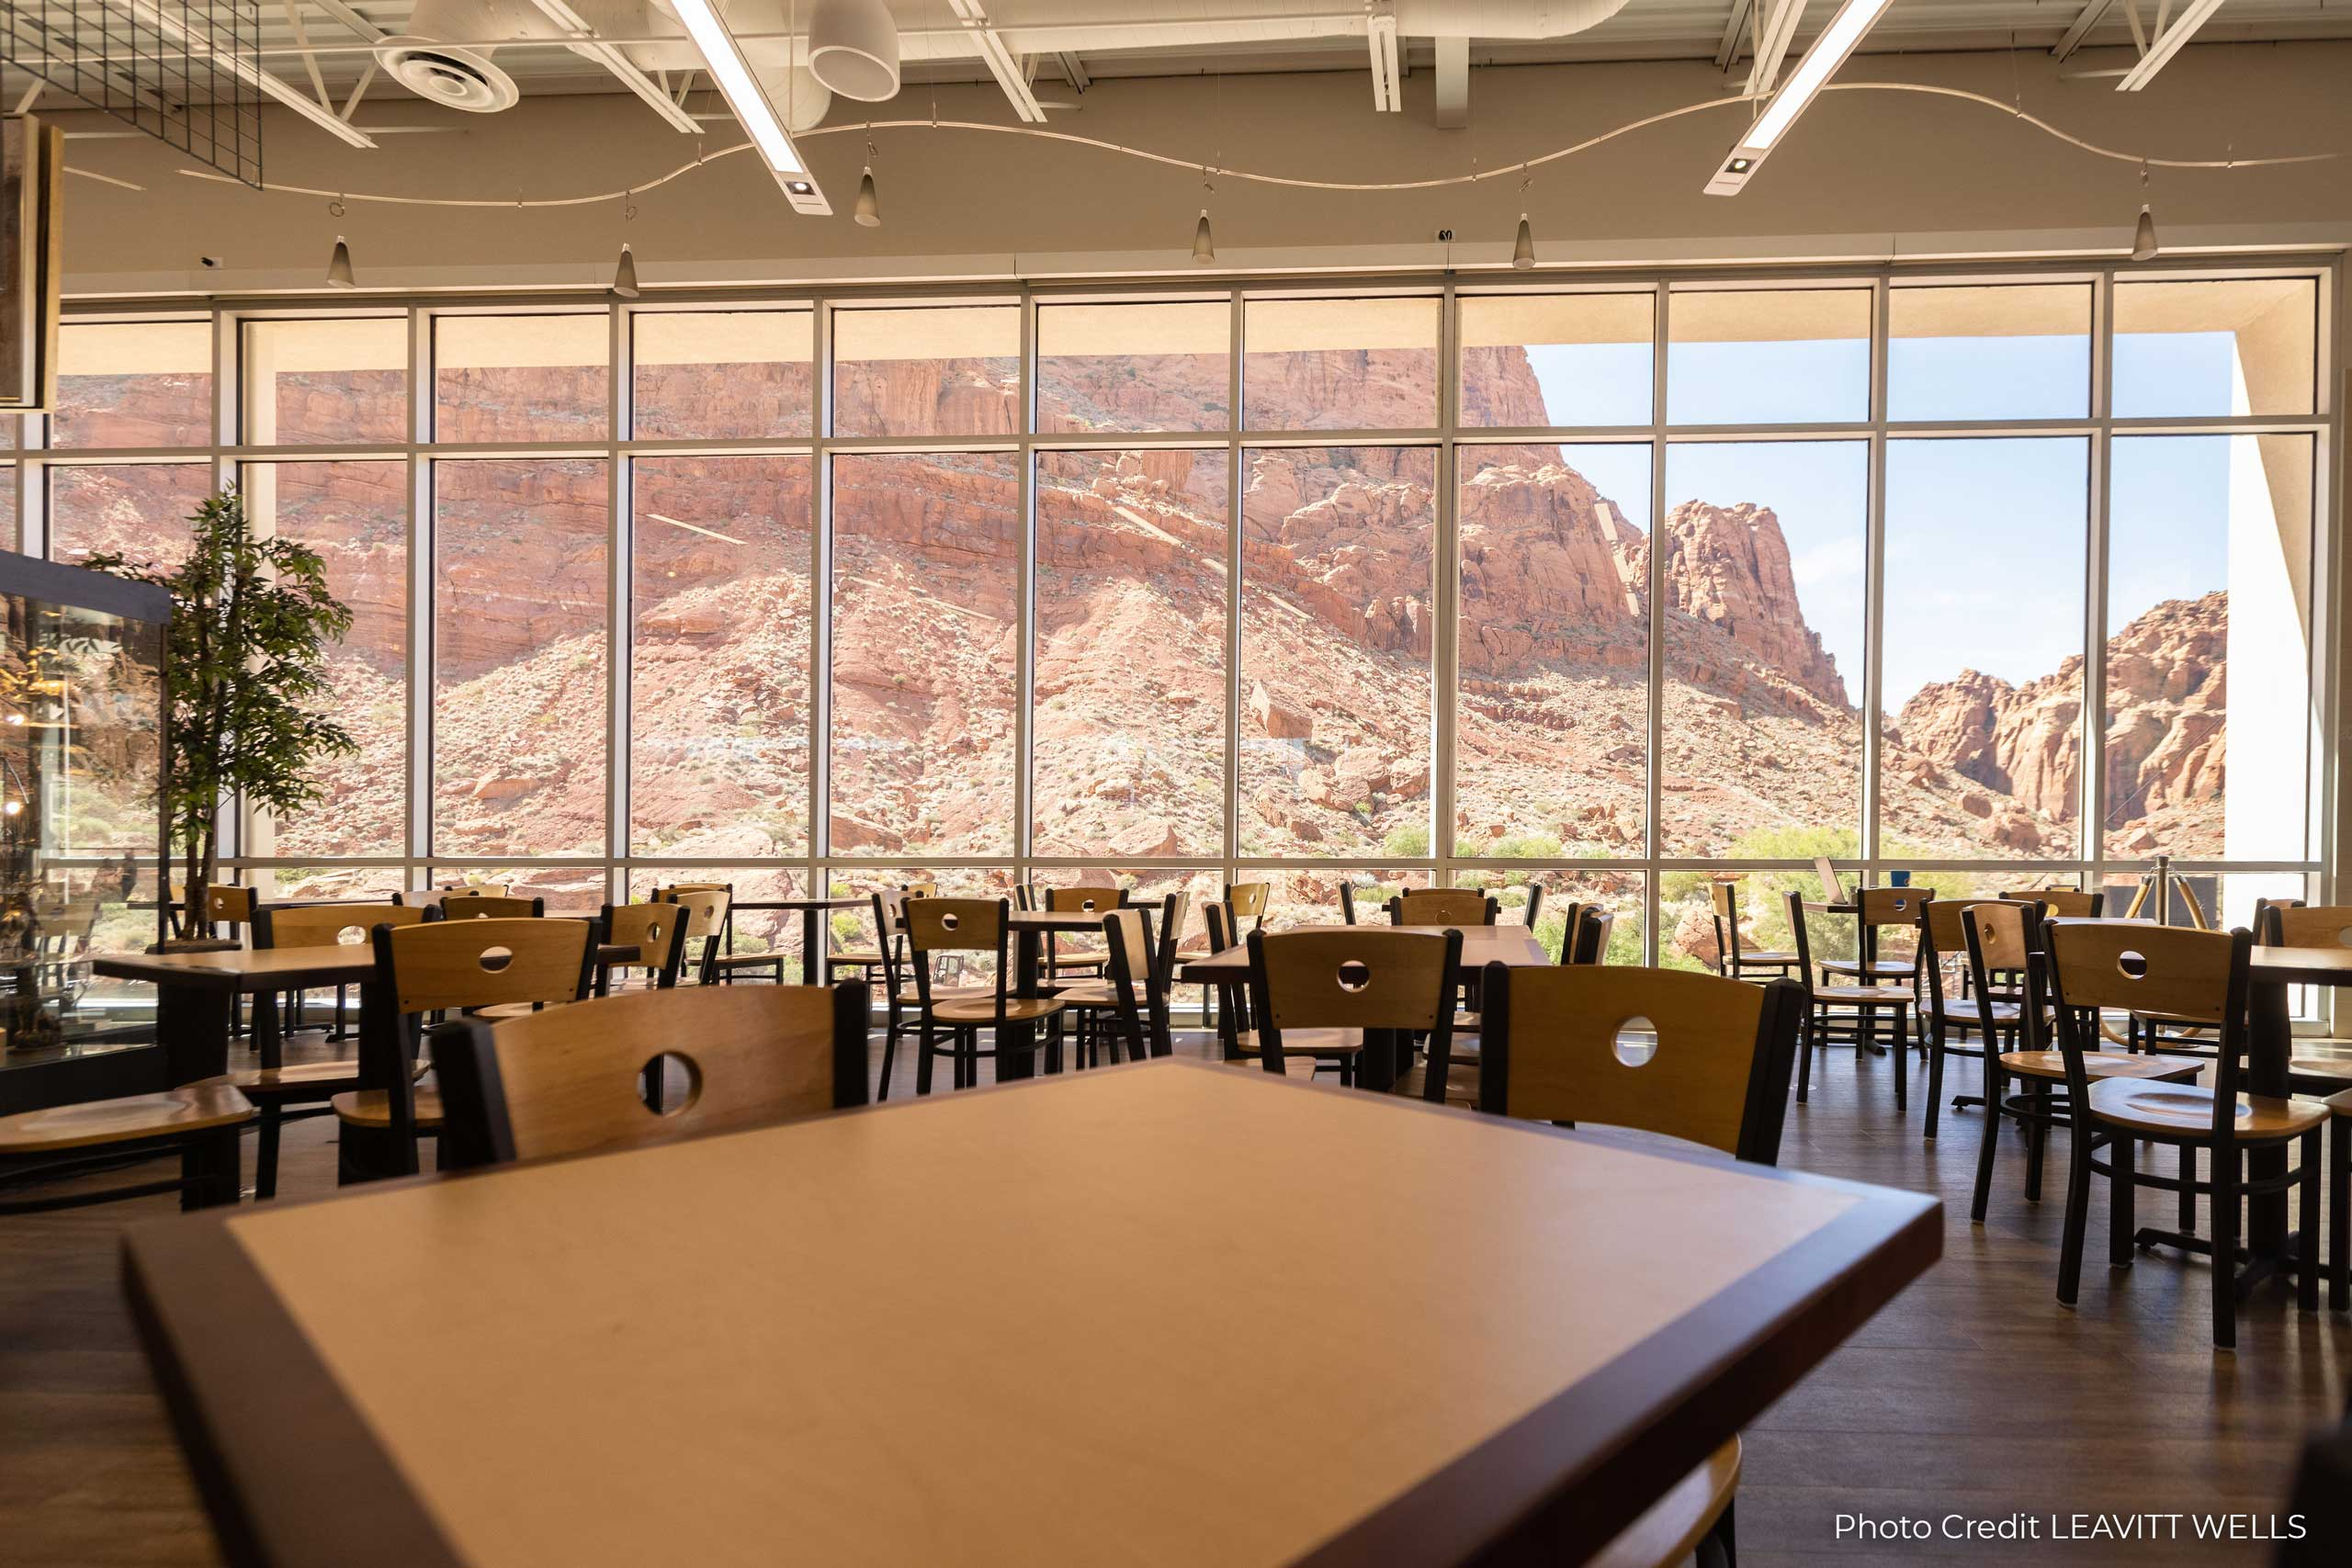 Tuacahn Cafe dining room with view of the canyon.